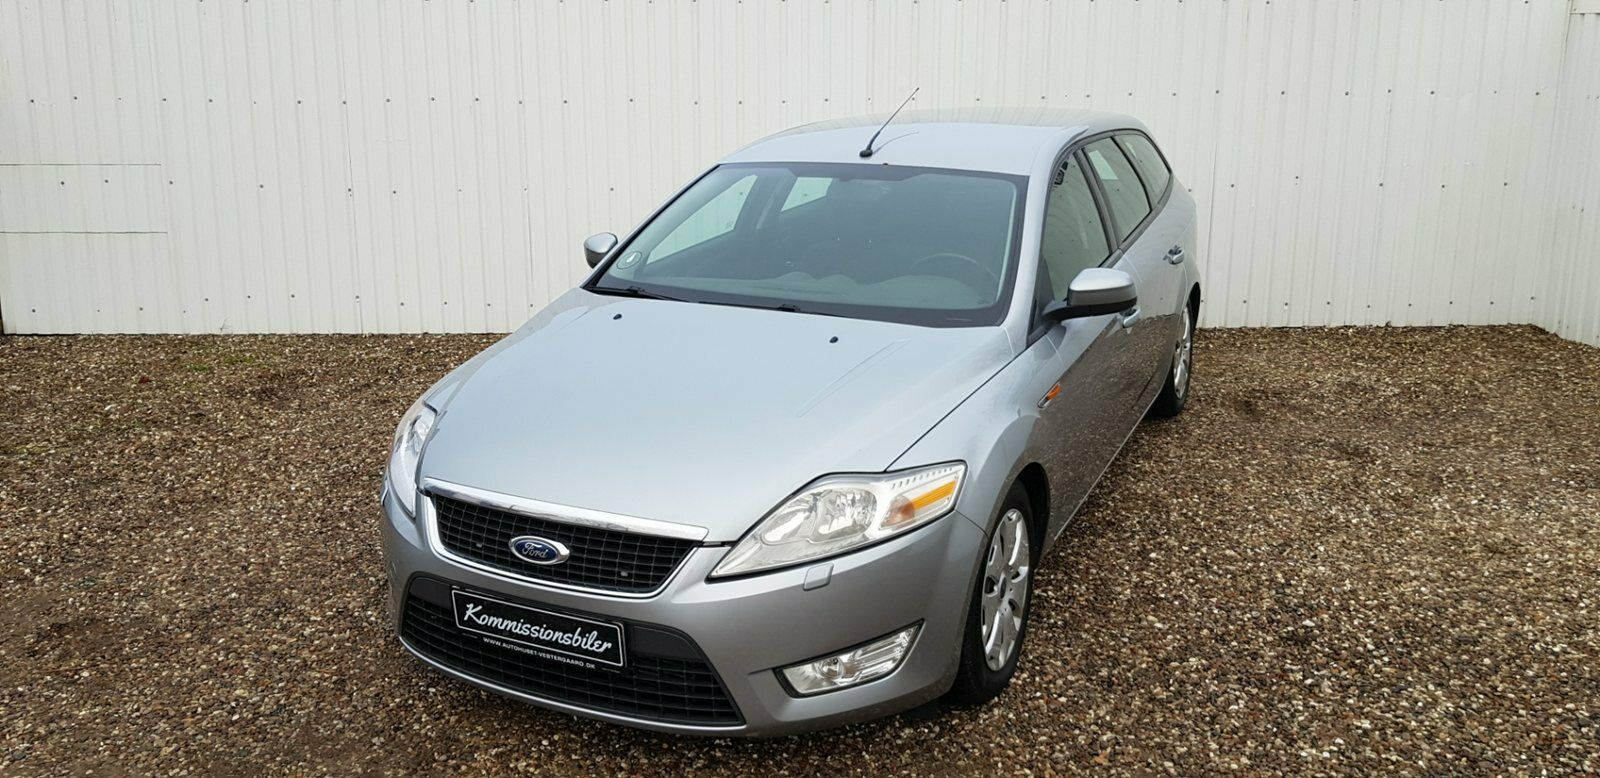 Ford Mondeo 2,0 TDCi 130 Trend stc. 5d - 29.900 kr.